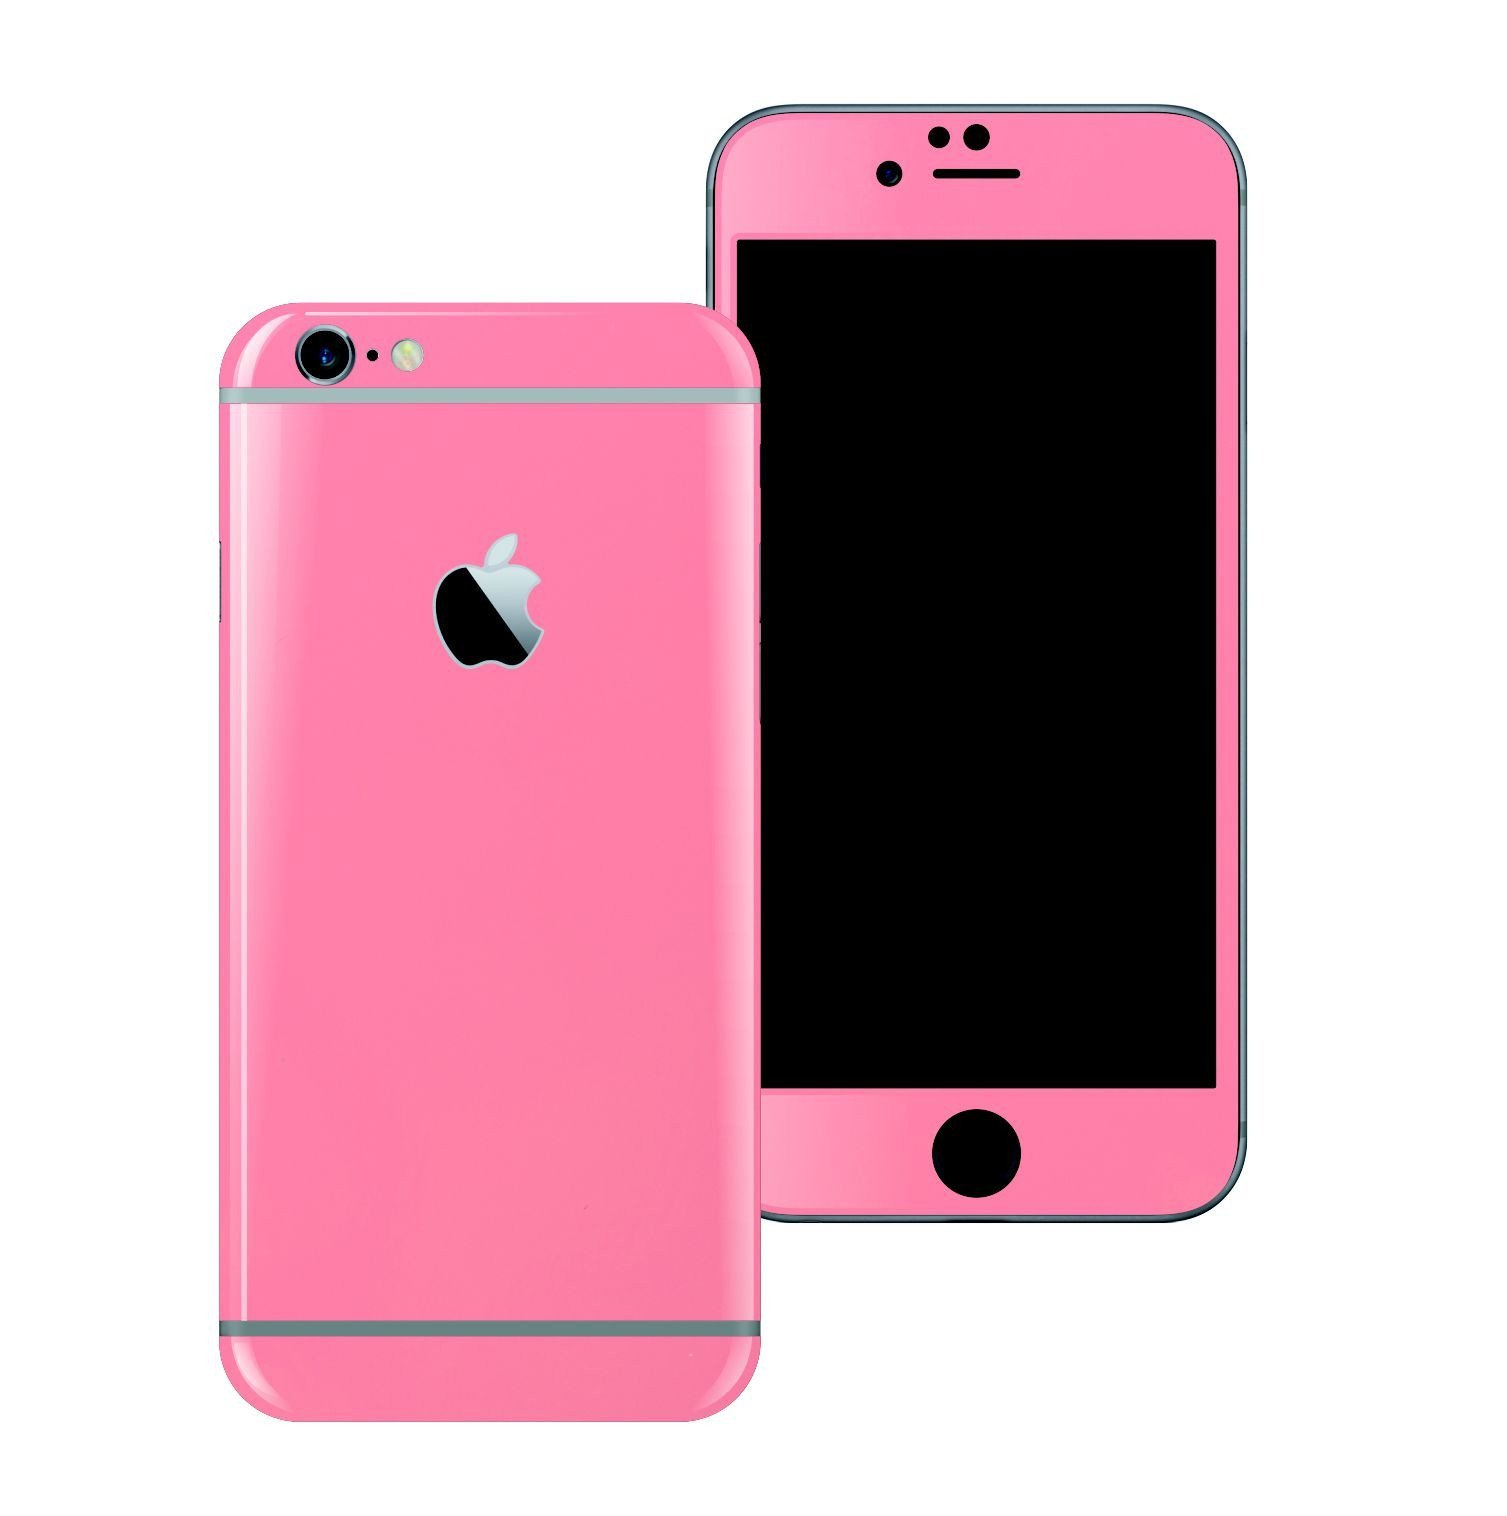 iPhone 6 Colorful HOT PINK GLOSSY Skin Wrap Sticker Cover Protector Decal by EasySkinz